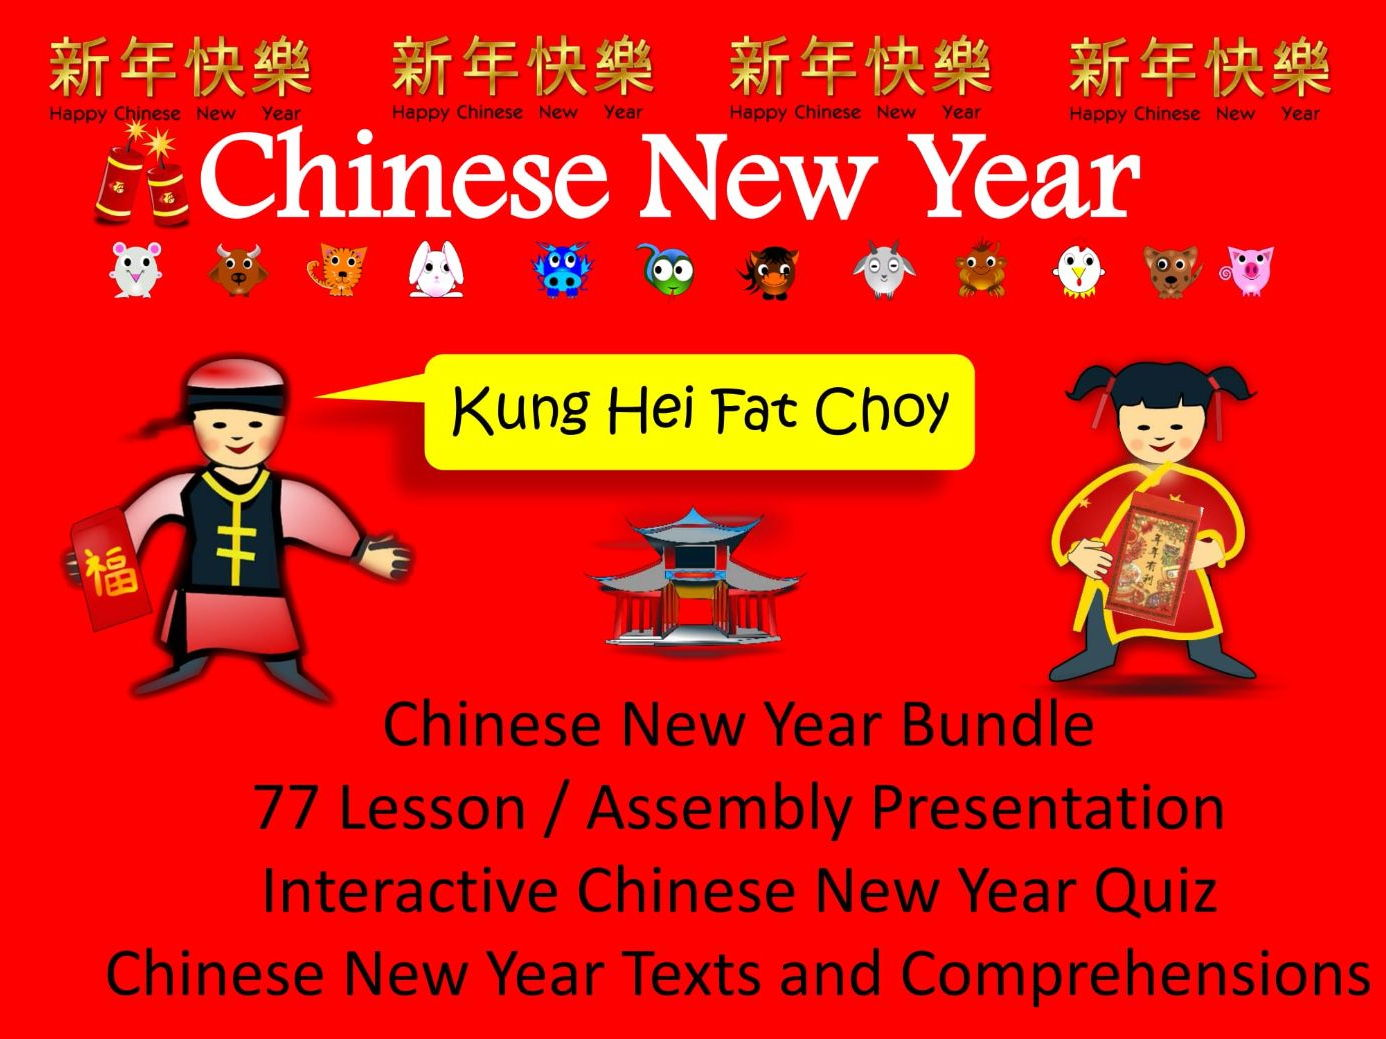 Chinese New Year:  Bundle - Presentation, Quiz, Texts and Comprehensions